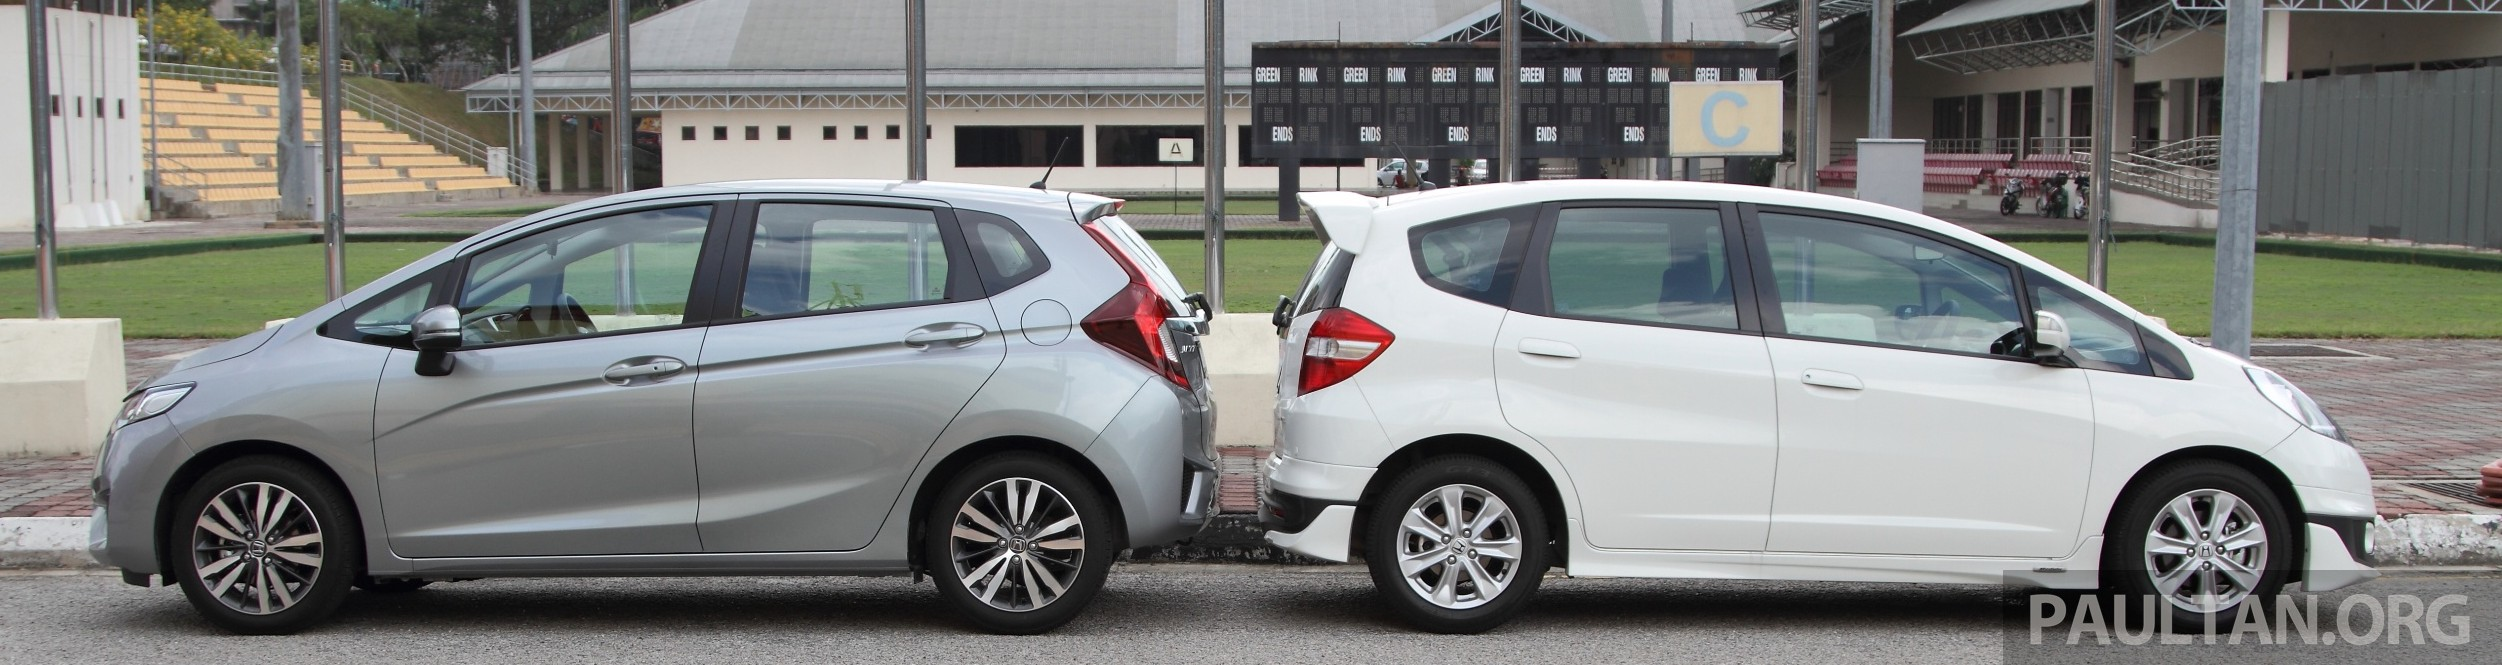 Side By Side 2018 >> GALLERY: Old and new Honda Jazz, side by side Paul Tan - Image 268634